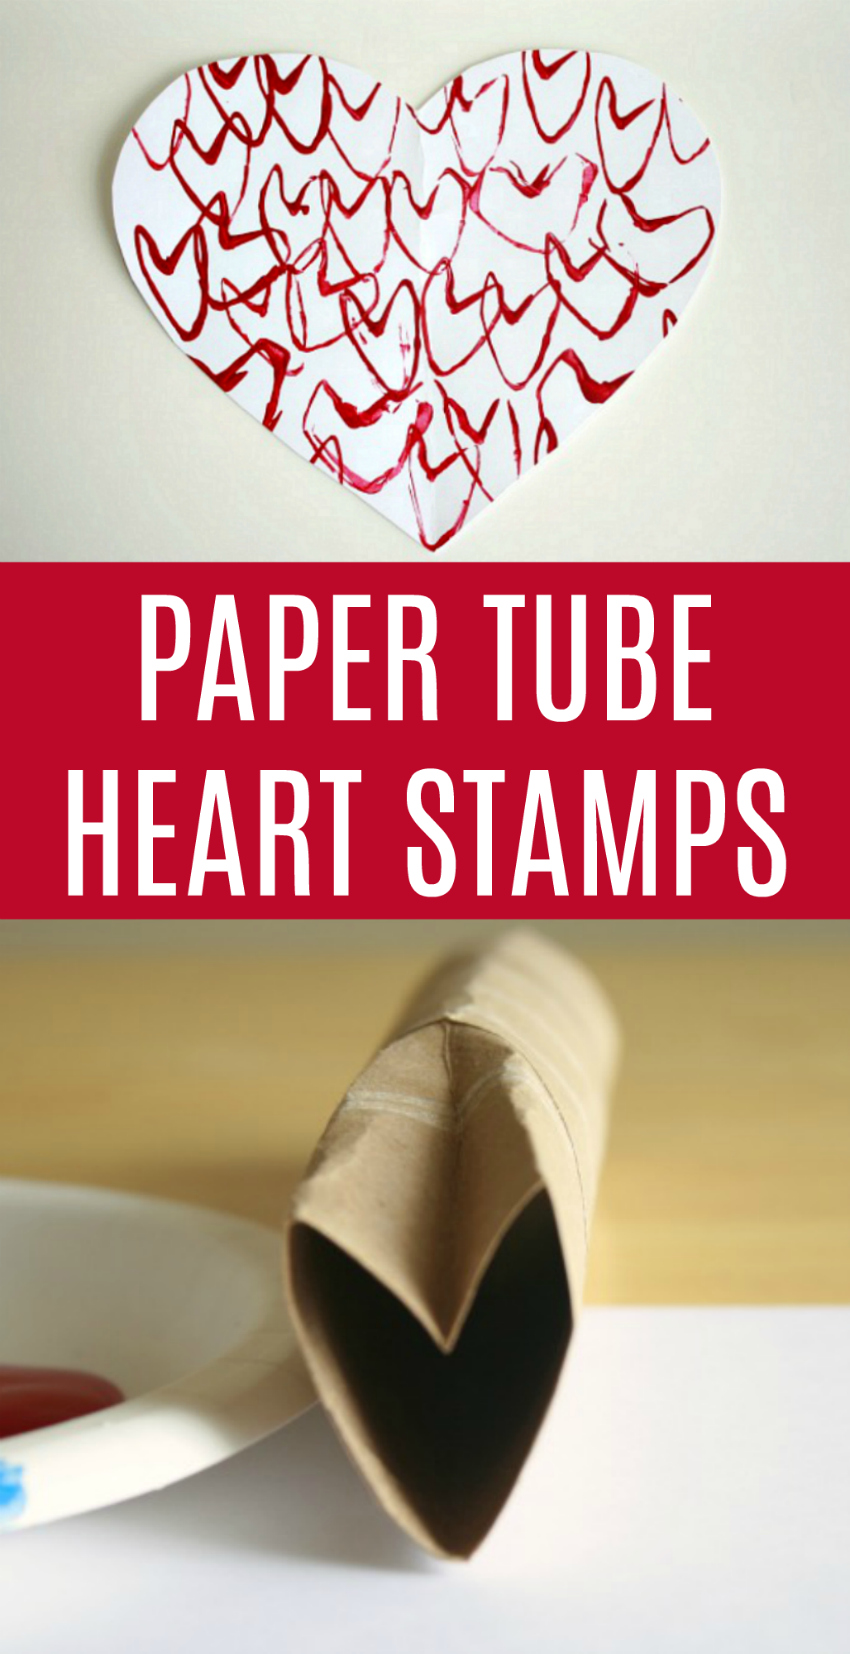 Make Paper Tube Heart Stamps